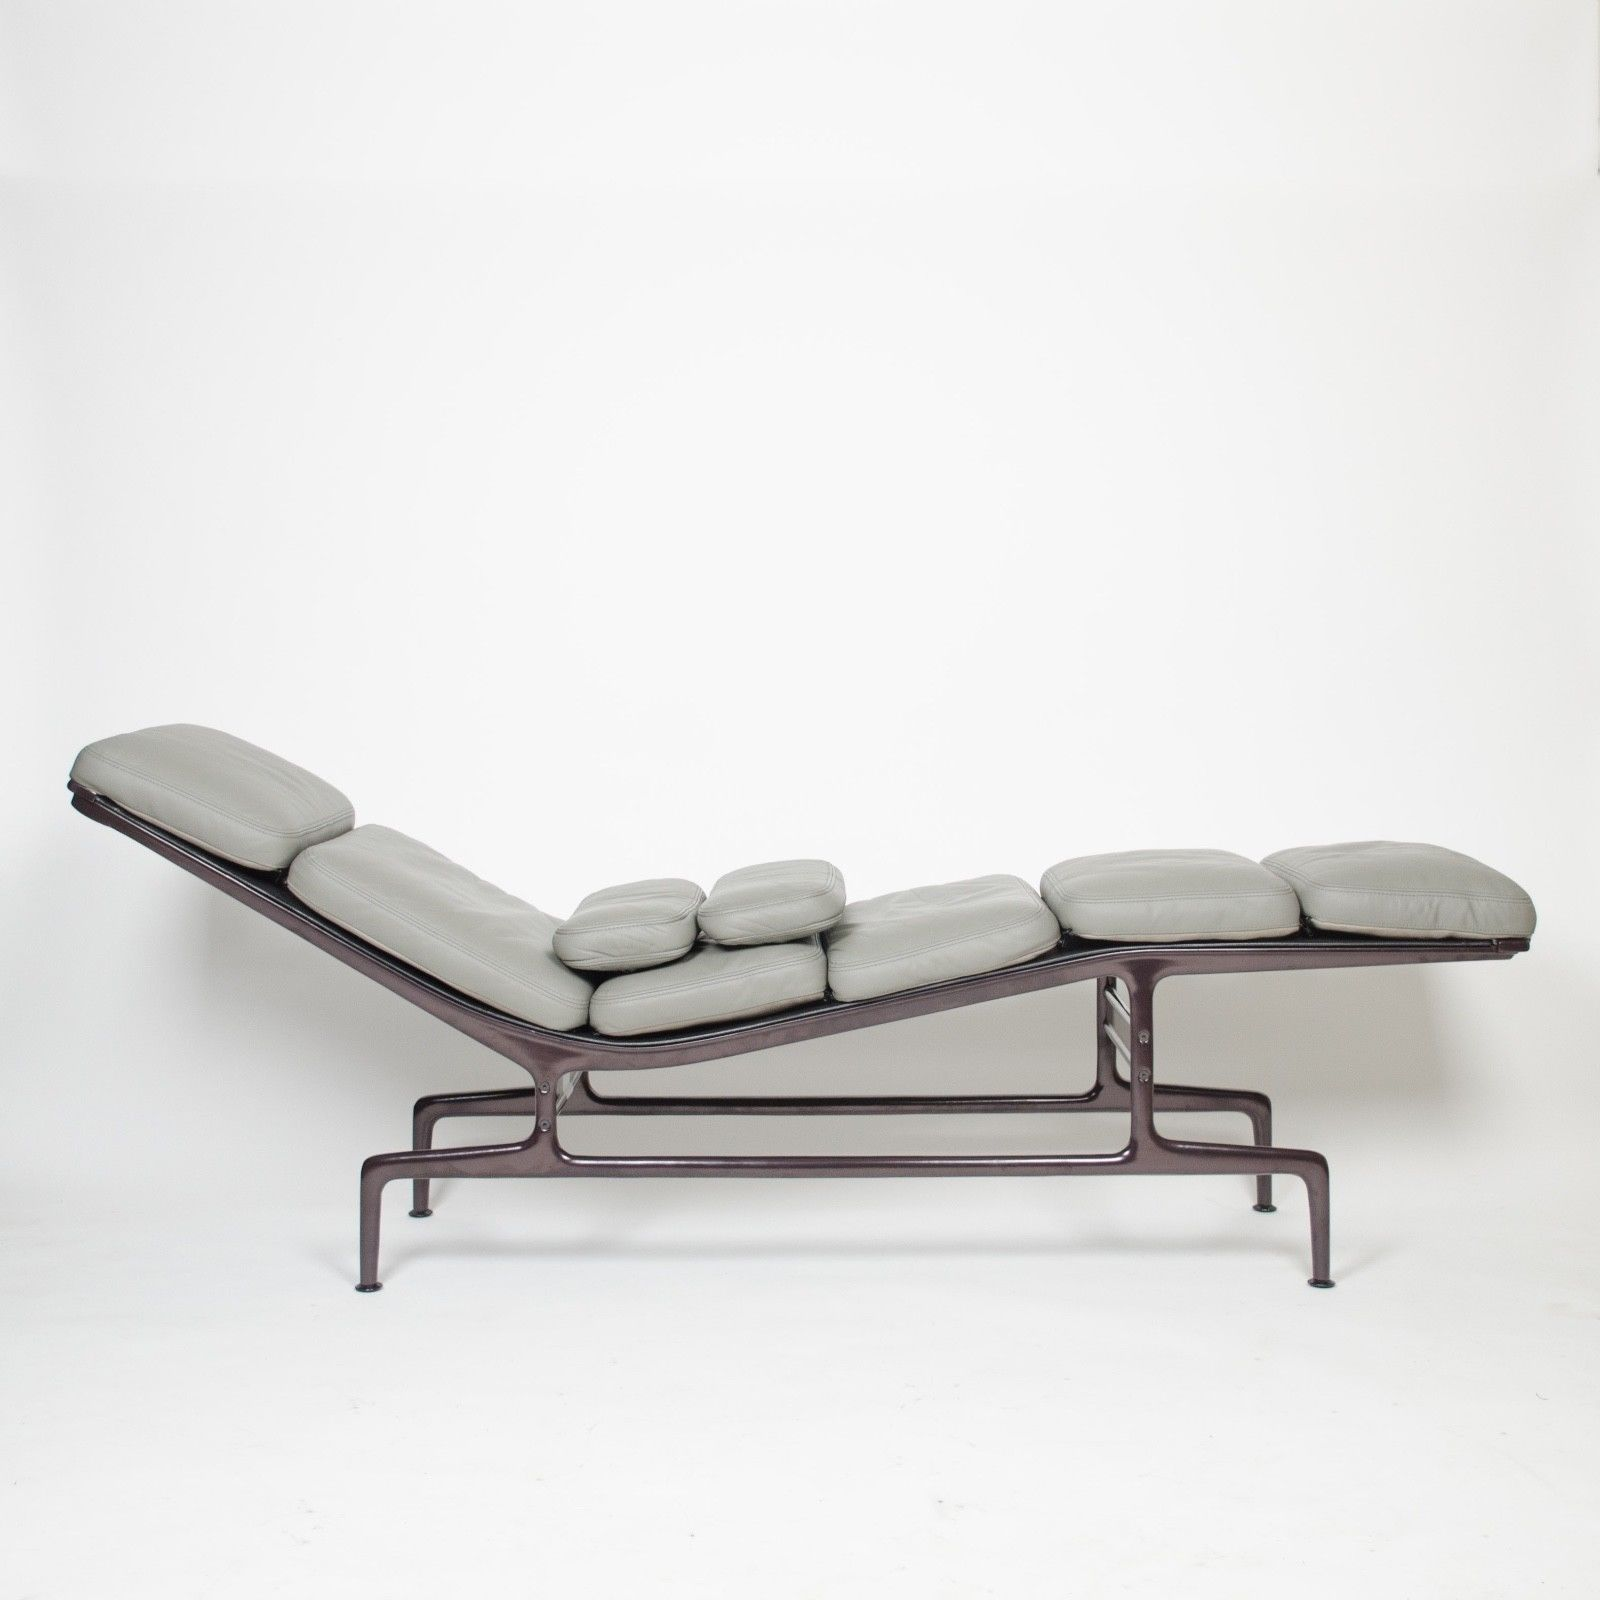 Eames Herman Miller Billy Wilder Gray And Eggplant Chaise Lounge Chair Outdoor Chaise Lounge Chair Chaise Lounge Chair Chair